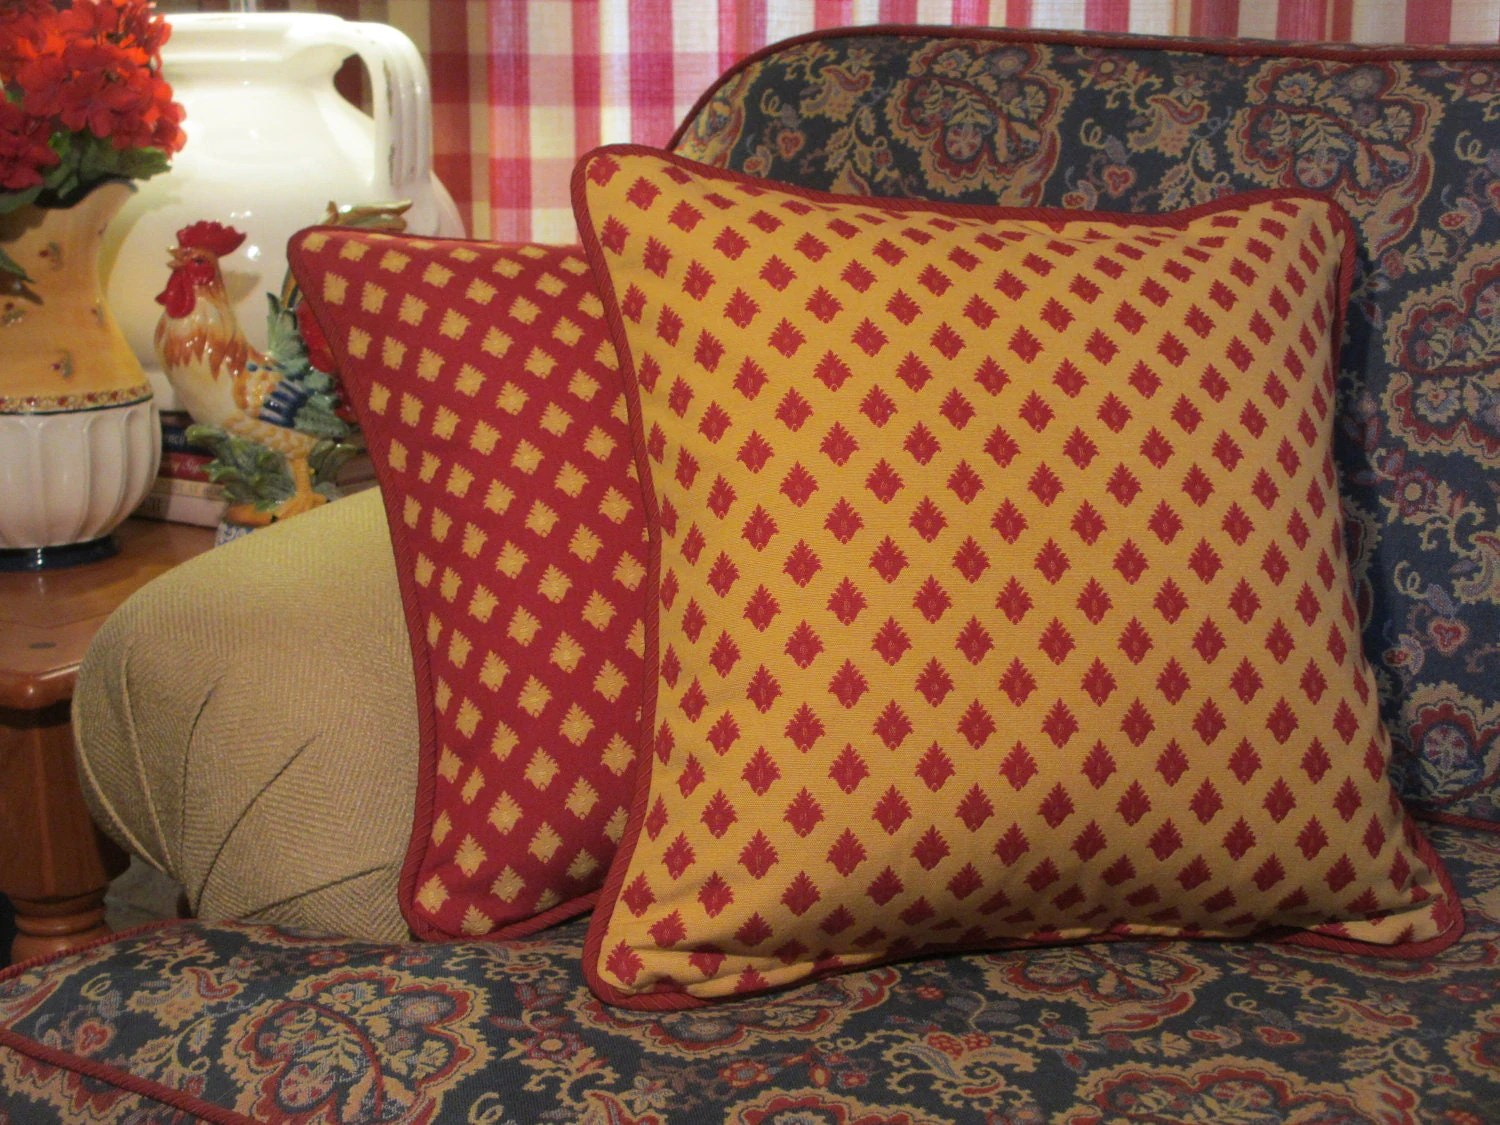 French Country Pillow Cover Red and Yellow Pillow Pompom